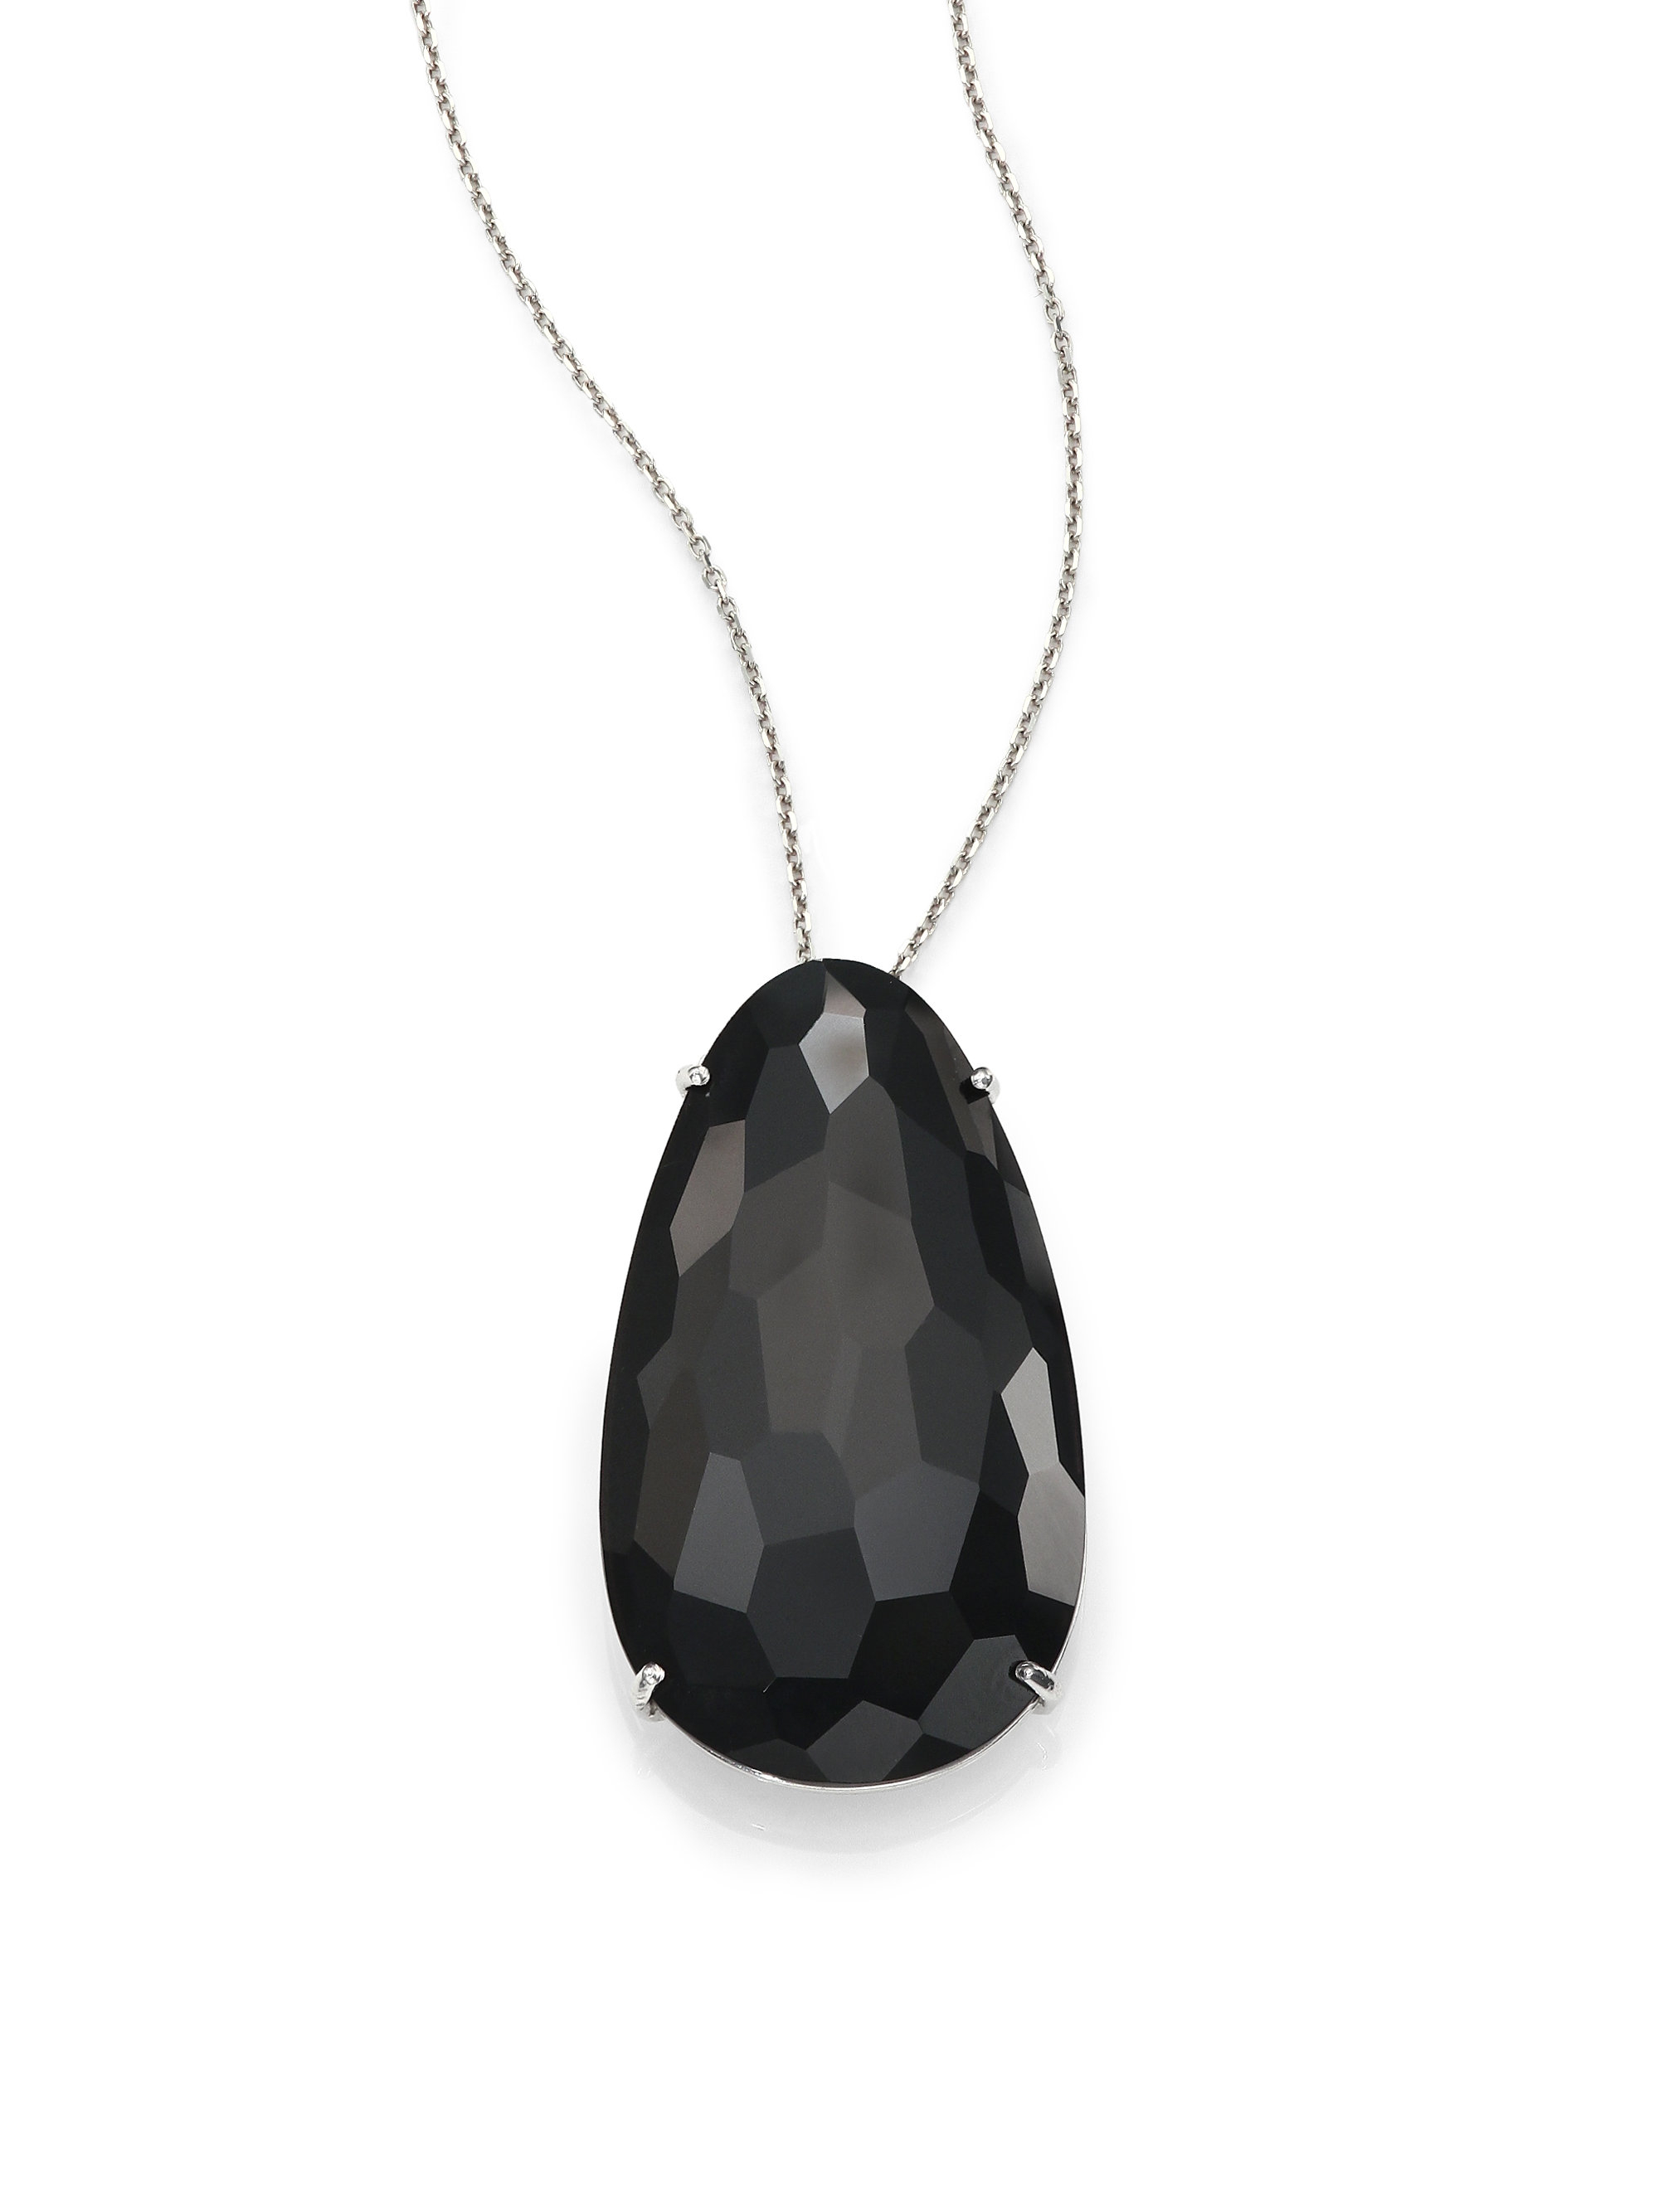 collections classic graff featuring a diamond shape pear pendant pendants necklace